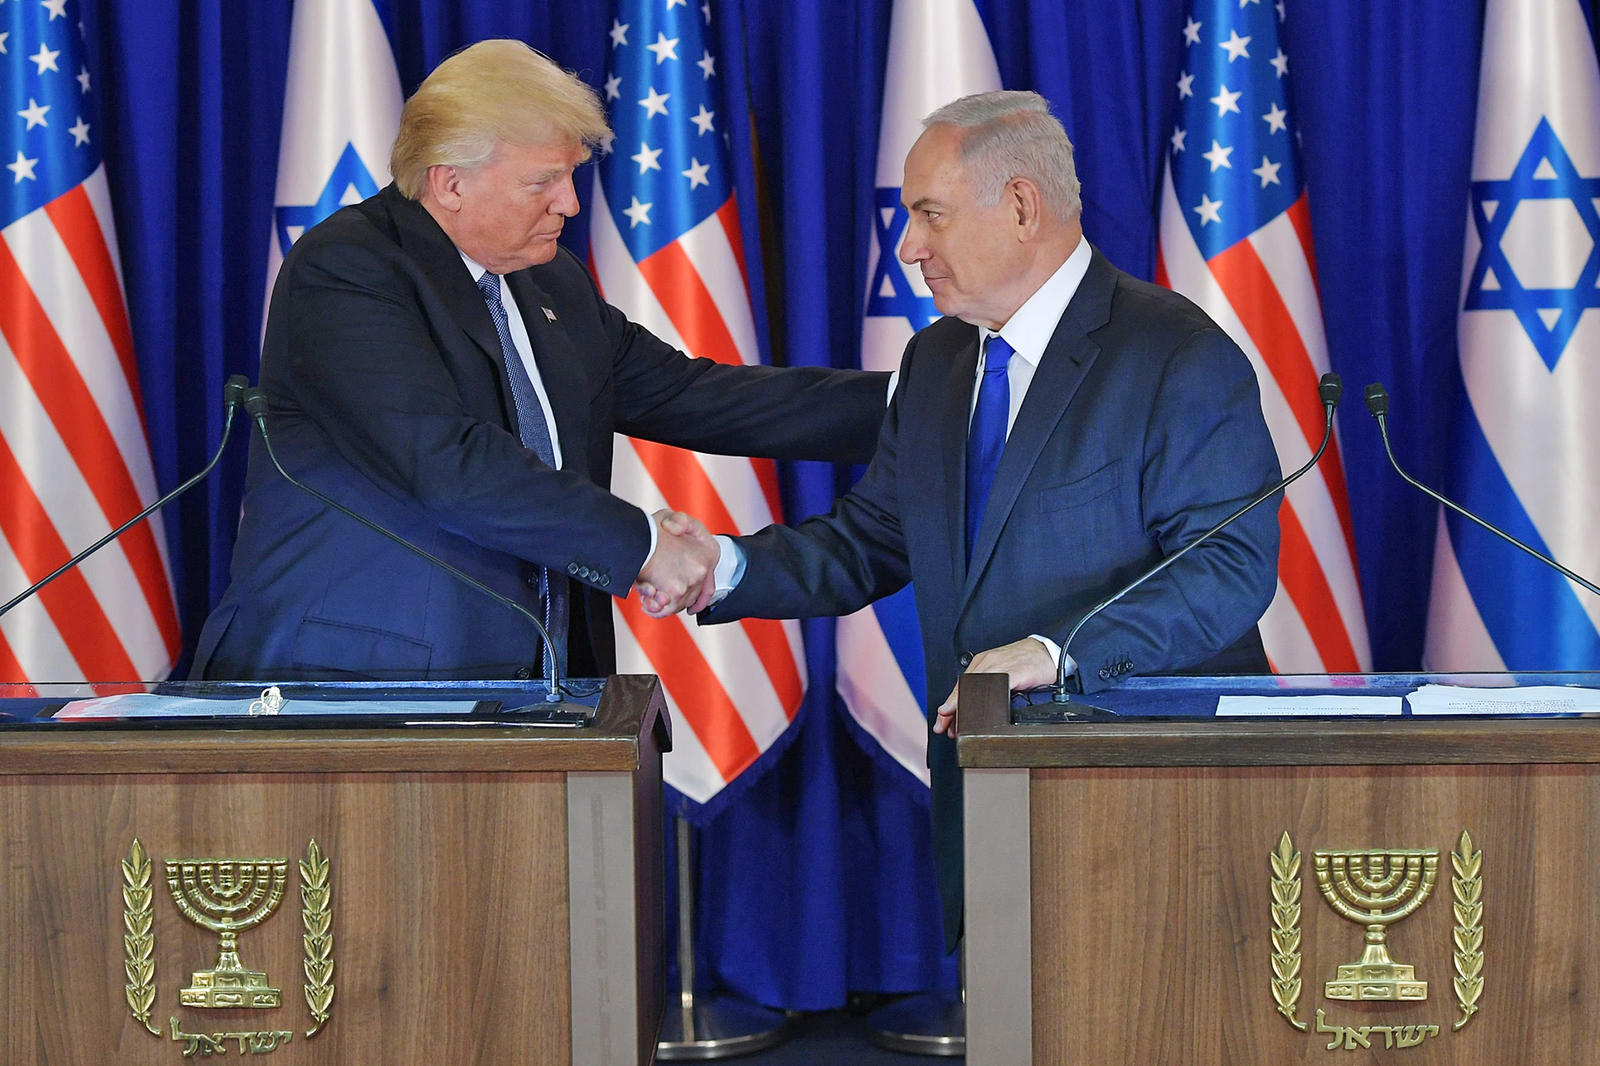 US President Donald Trump (L) and Israel's Prime Minister Benjamin Netanyahu shake hands after delivering press statements before an official diner in Jerusalem on May 22, 2017. / AFP PHOTO / MANDEL NGANMANDEL NGAN/AFP/Getty Images